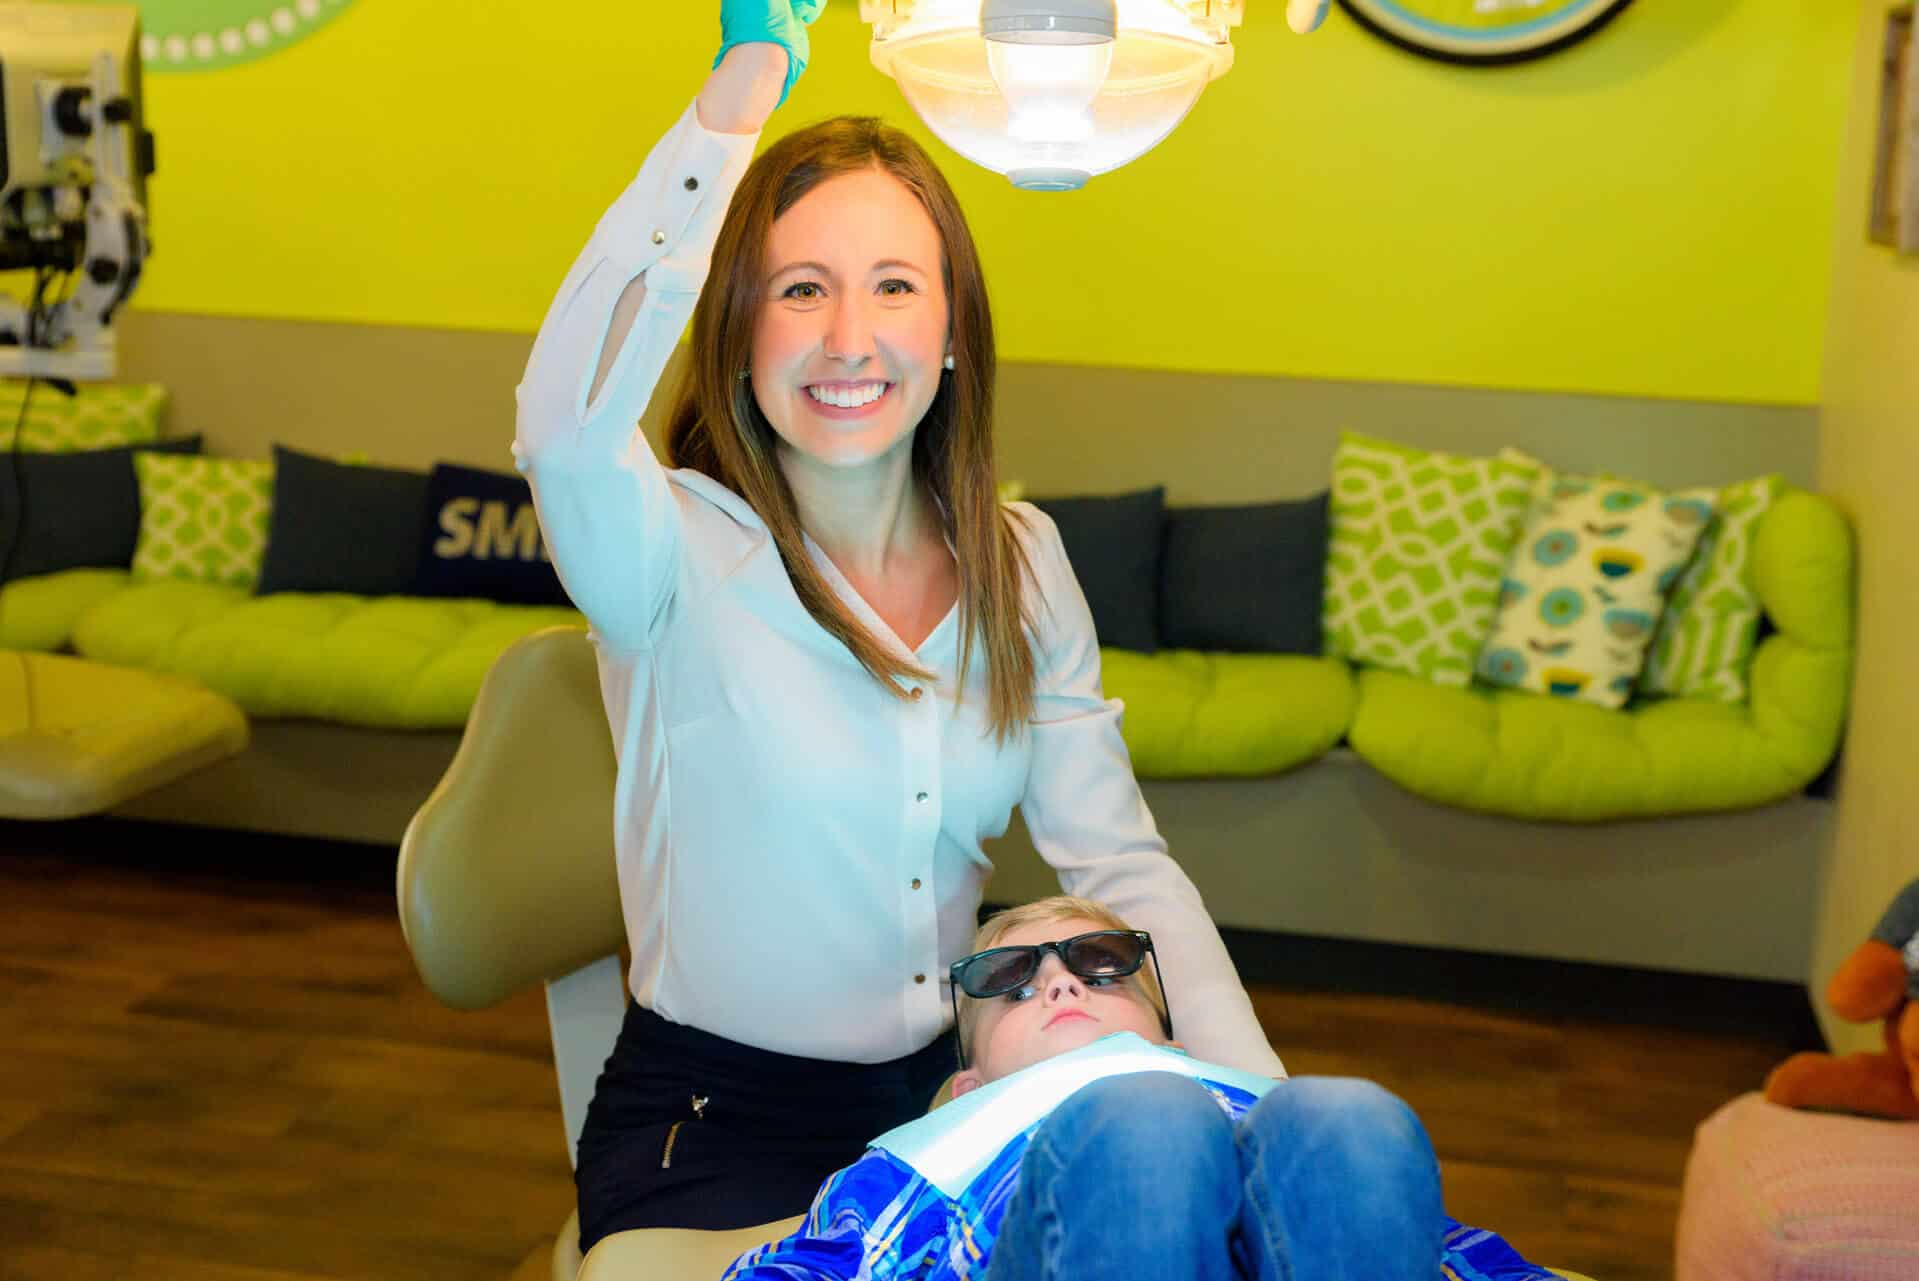 A young patient lying on the treatment bed wearing blue jeans and a plaid blue flannel shirt relaxed while wearing dark glasses over his eyes lying on the treatment bed in the treatment area while the dentist  Dr. Erin Saucier dressed in white blouse is sitting next to the head of the patient bed smiling and reaching up to the light fixture above the boy with her right hand in a green exam glove, the view of the yellow bright wall behind her showing the long seating bench covered with lime green base cushion and back cushions in lime green, black and white varied patterns